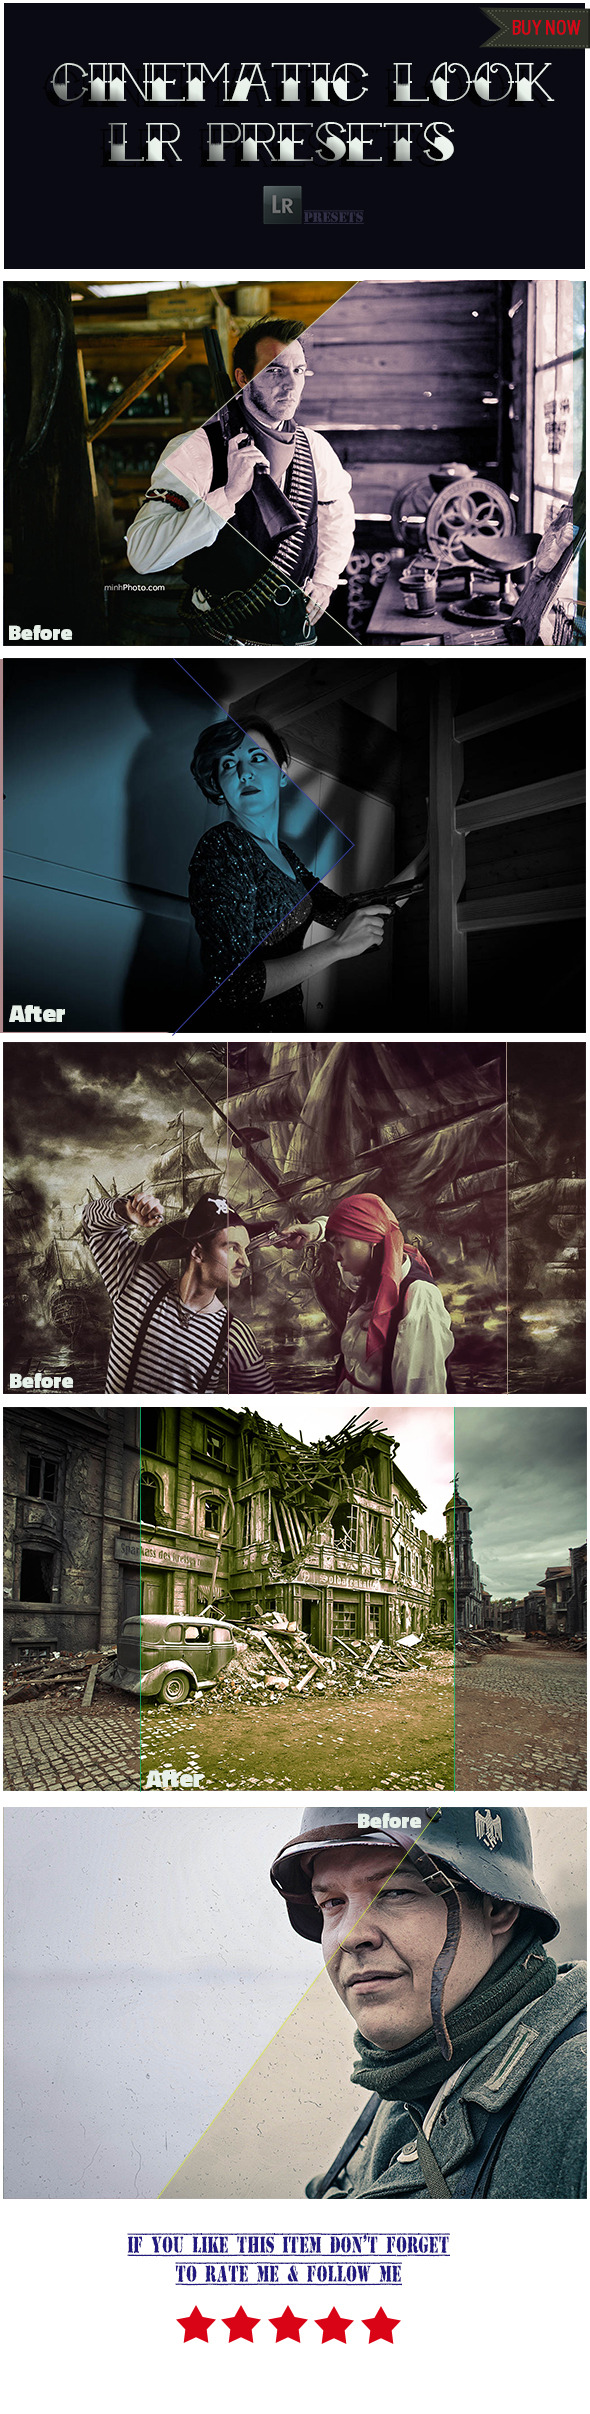 5 Cinematic Look Presets - Photo Effects Actions